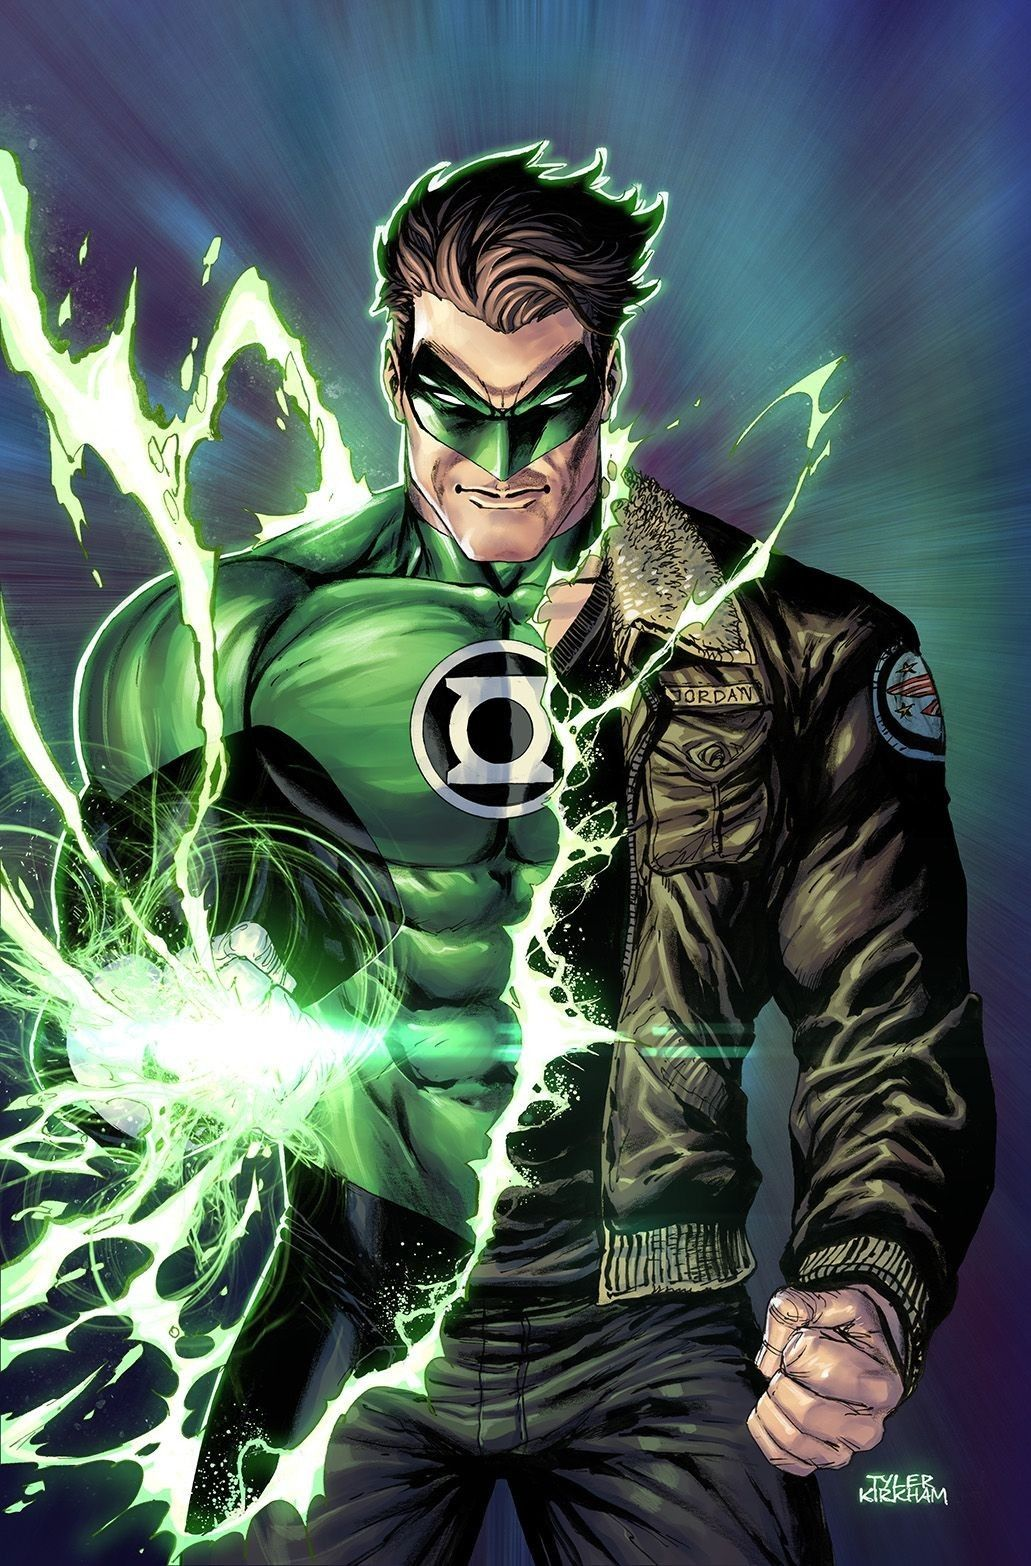 Pin By Alejandro Sandoval On Worlds Of Dc Art Cartoons And Comics Green Lantern Comics Green Lantern Corps Green Lantern Hal Jordan